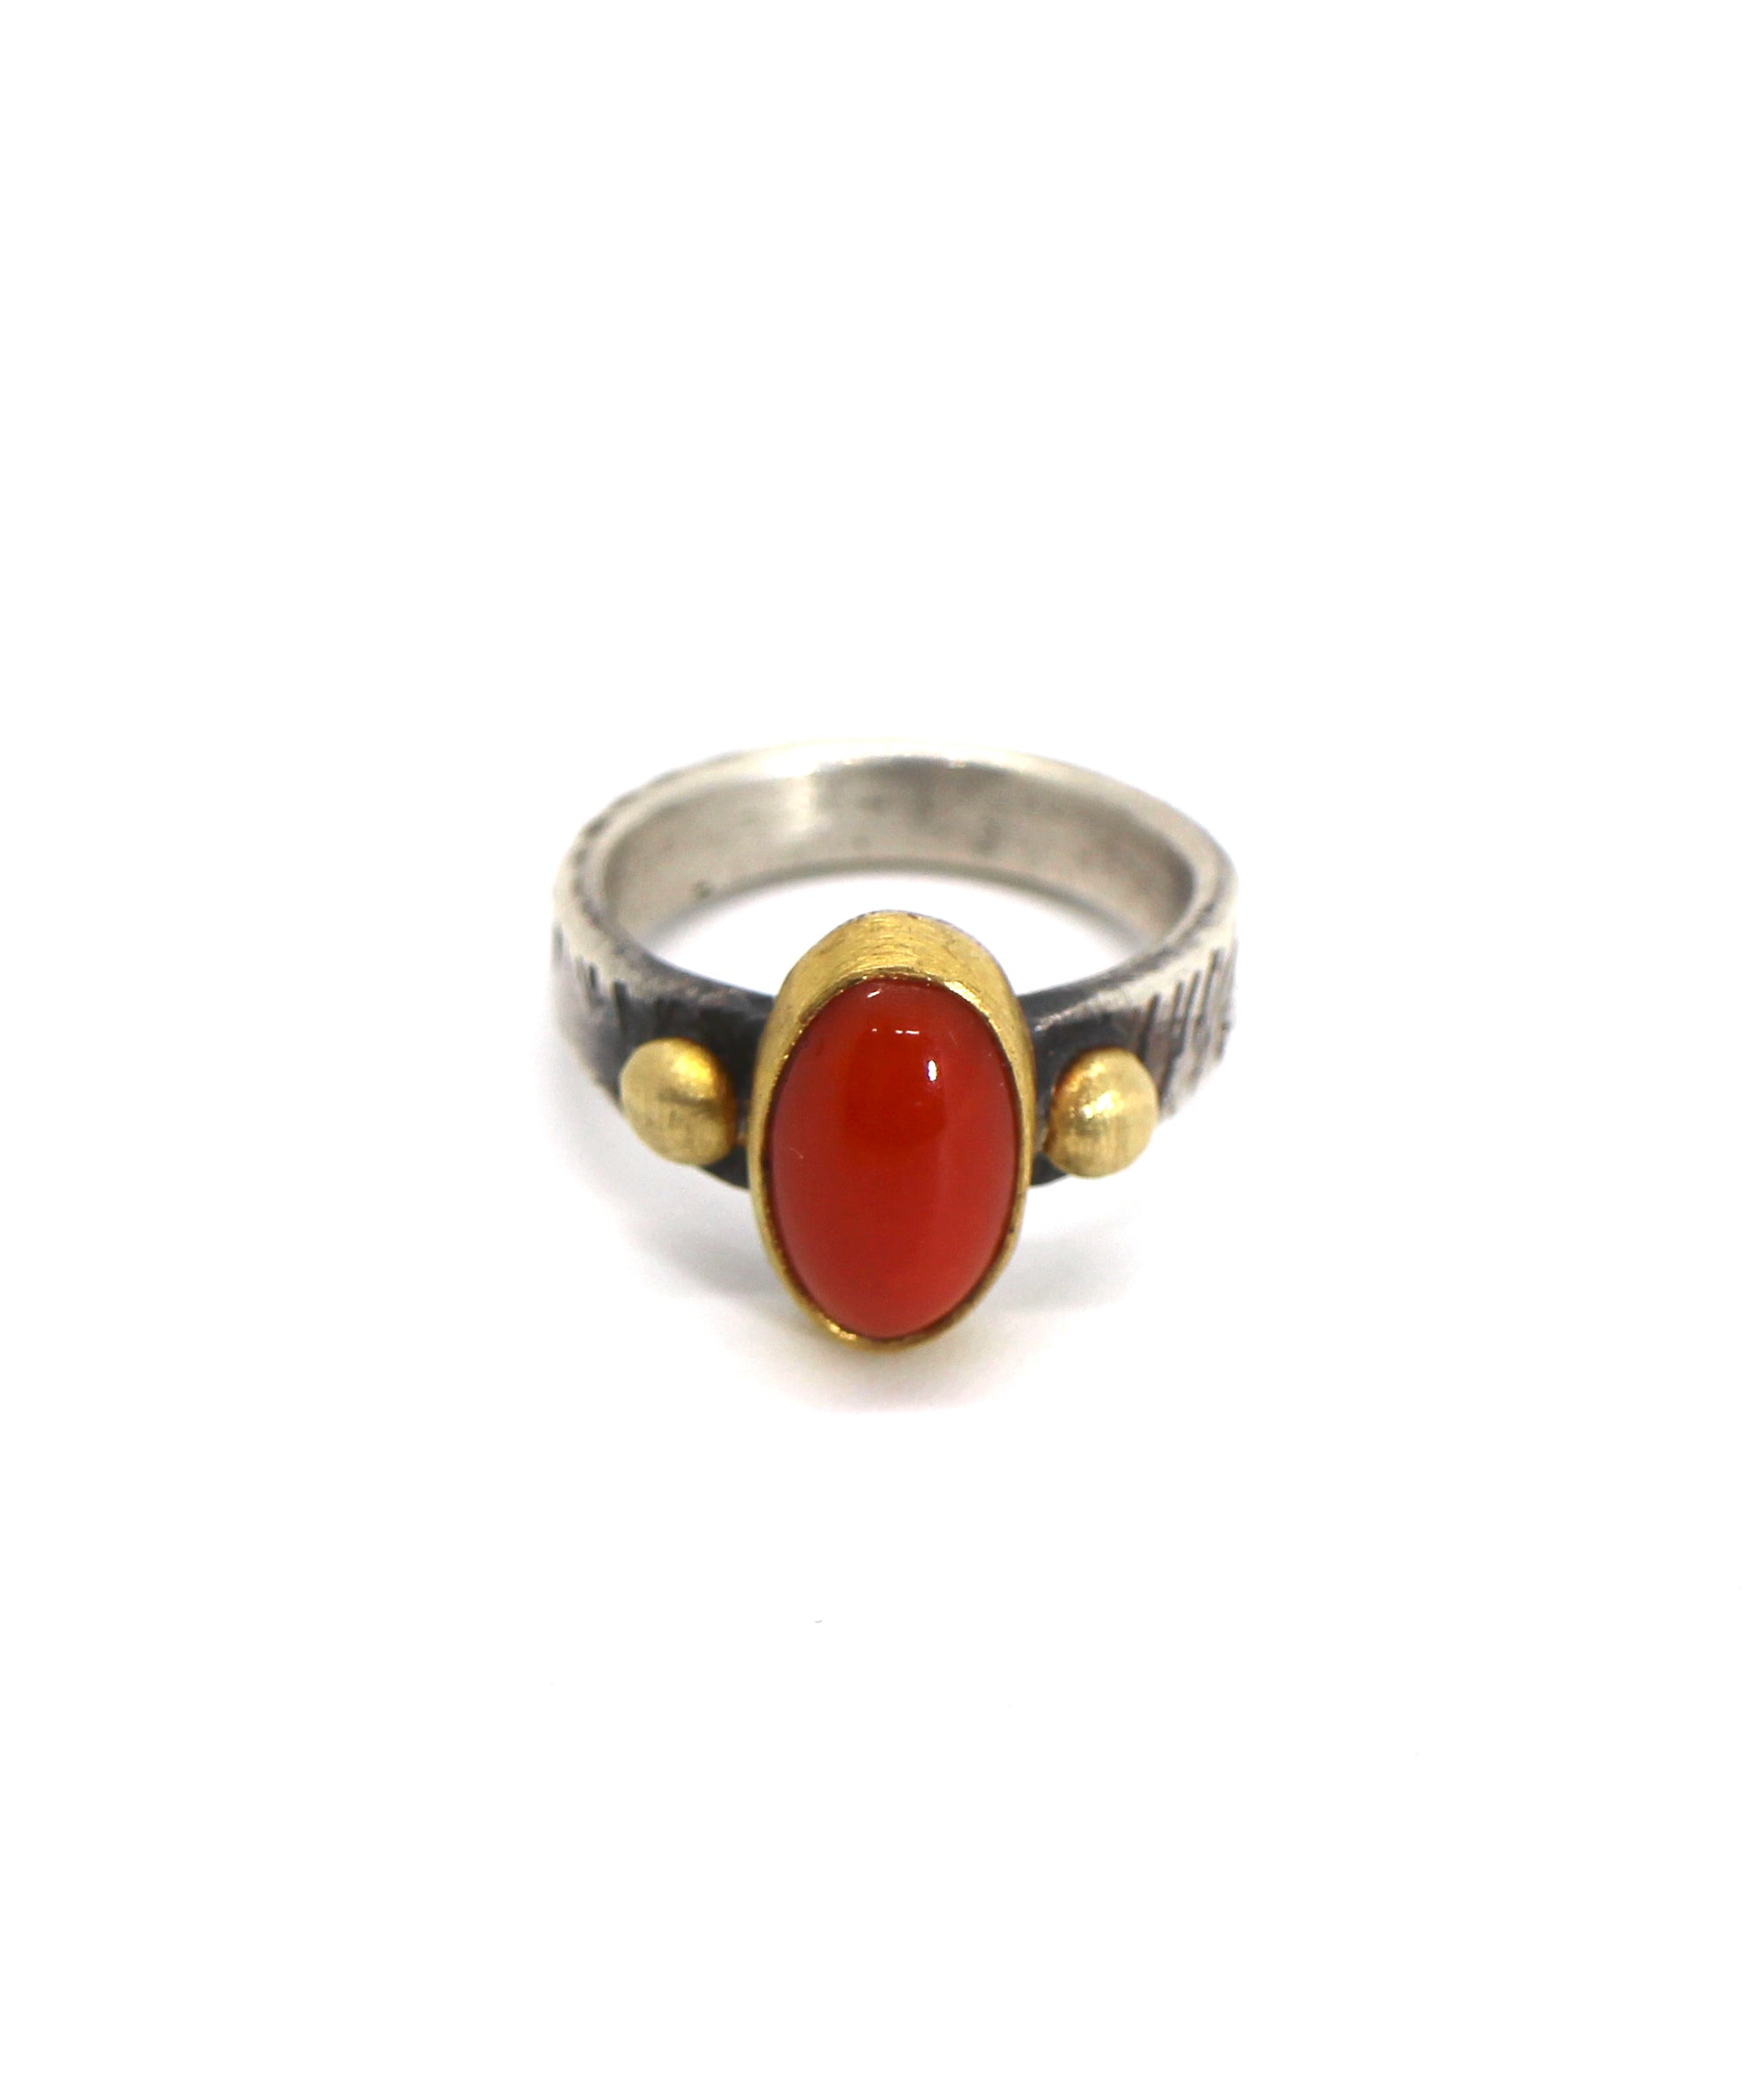 Jesse Robbins Gold and Coral Ring